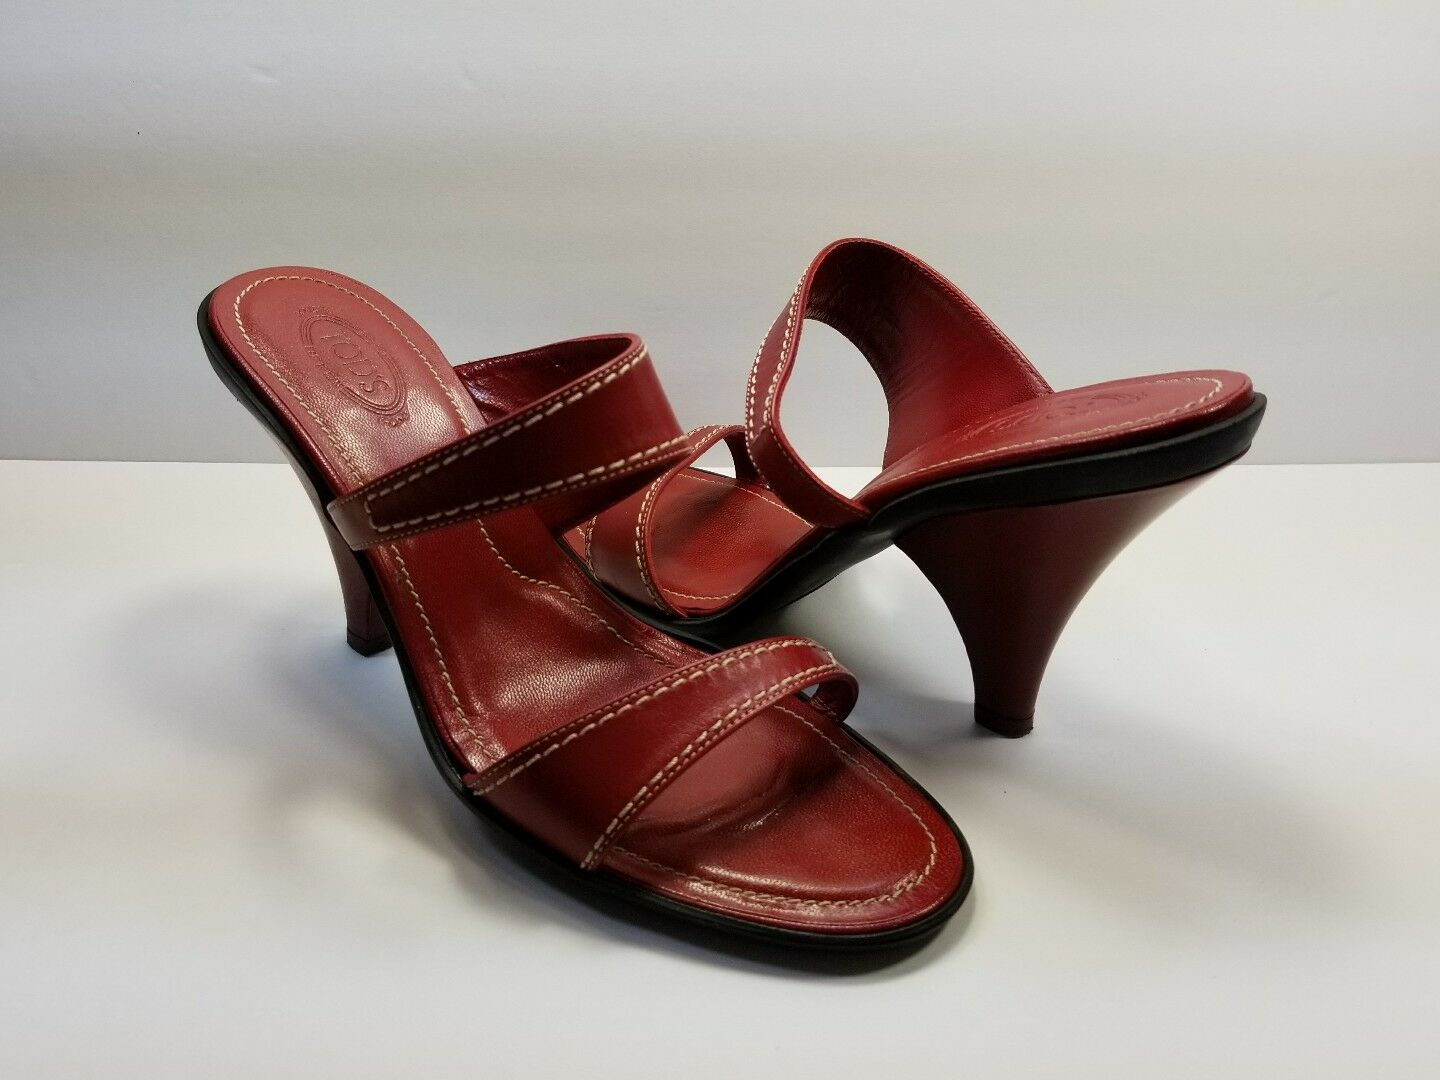 TOD'S Women's Res Strappy Sandals - Size 10